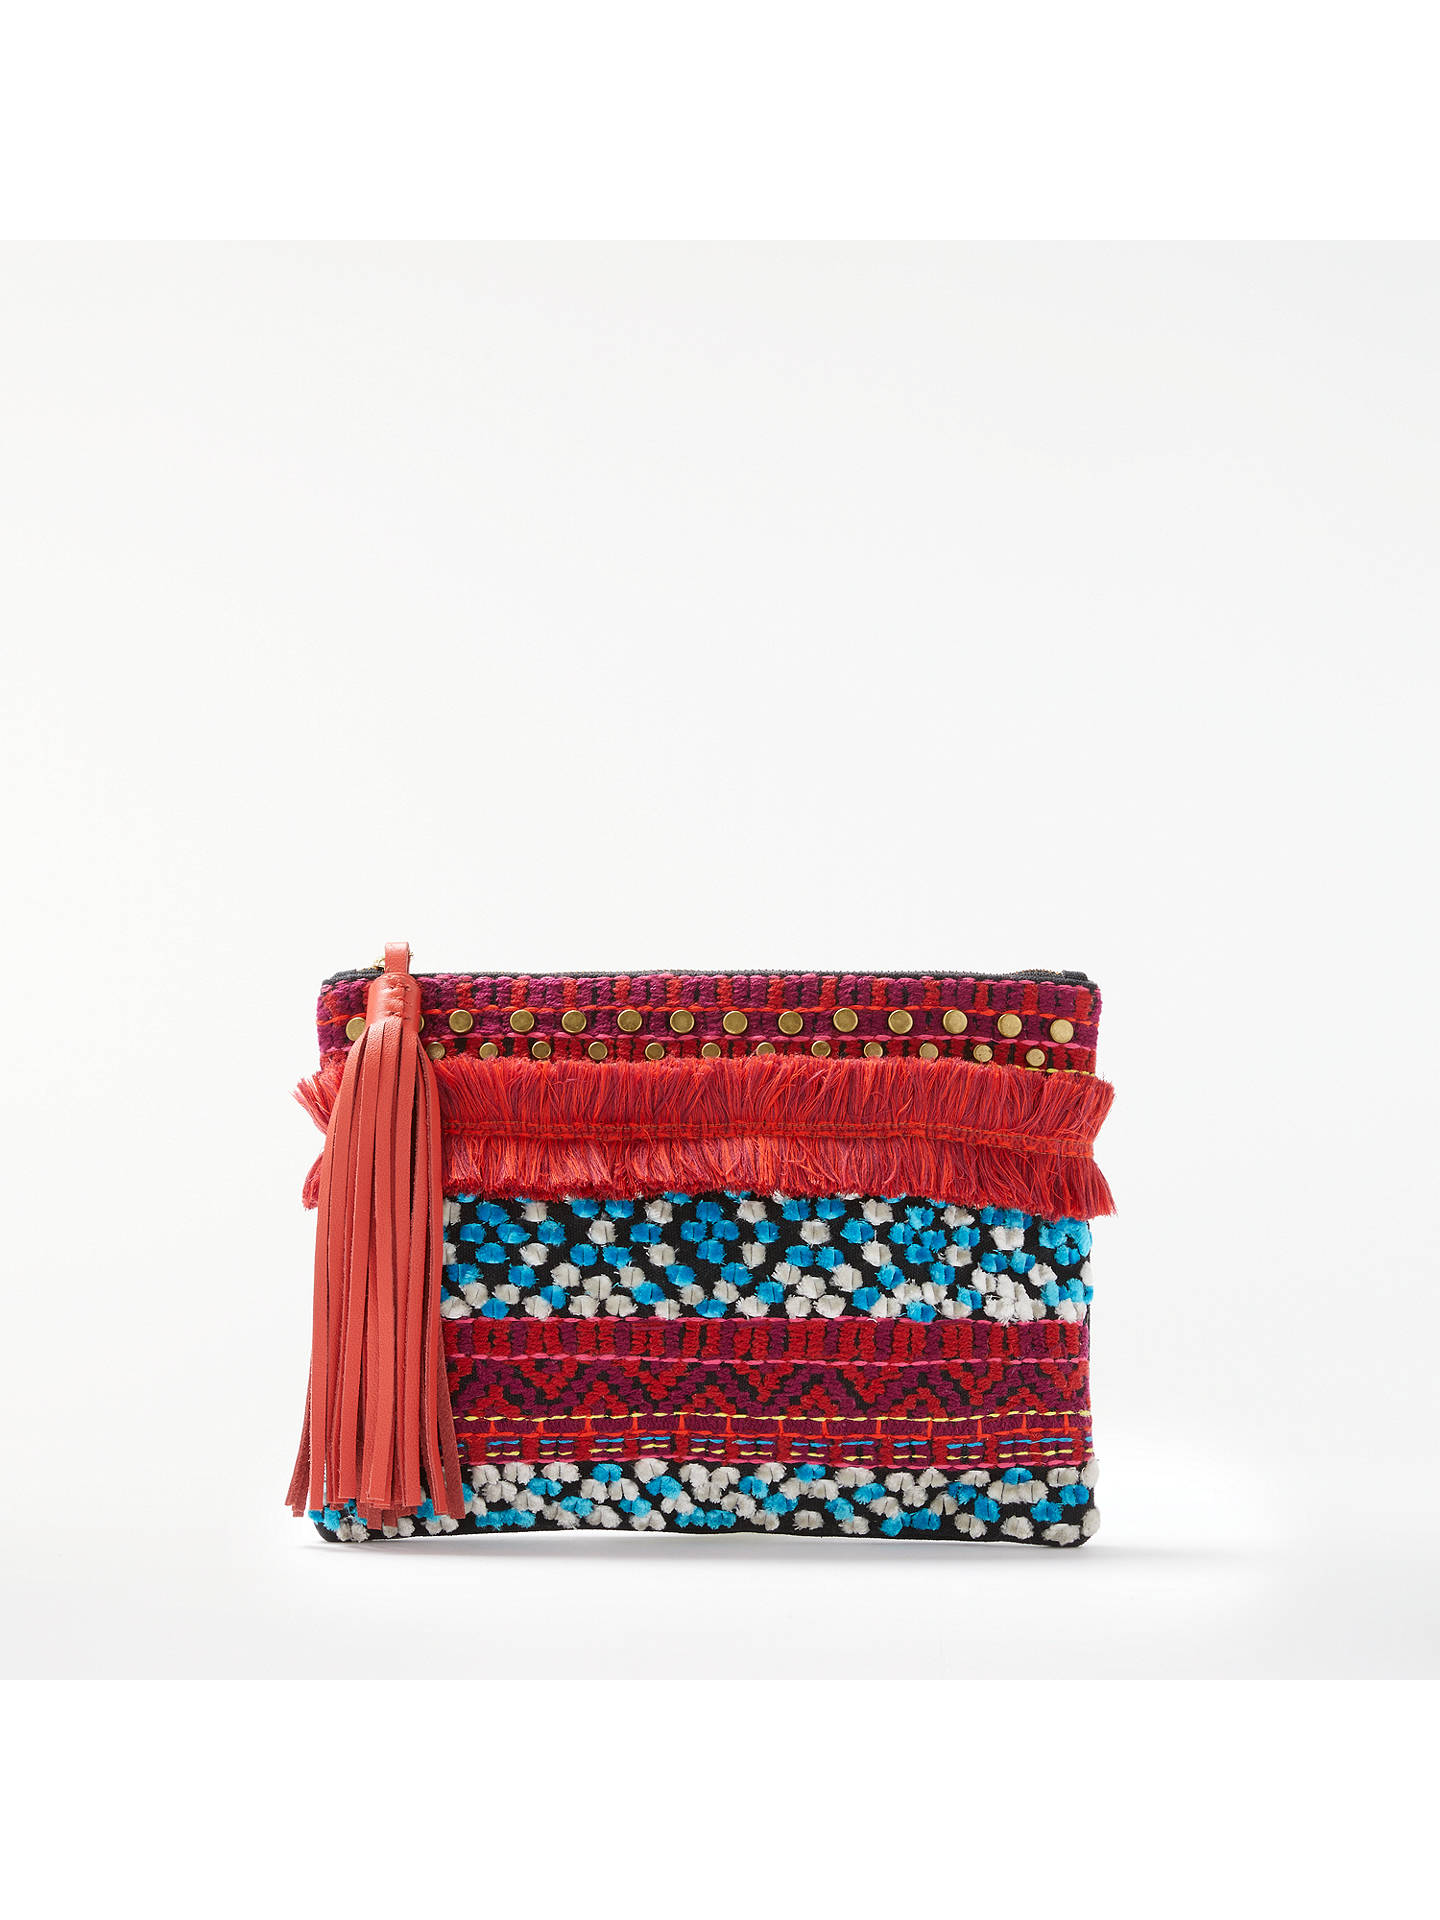 AND/OR Atala Embellished Clutch Bag, Multi at John Lewis ...